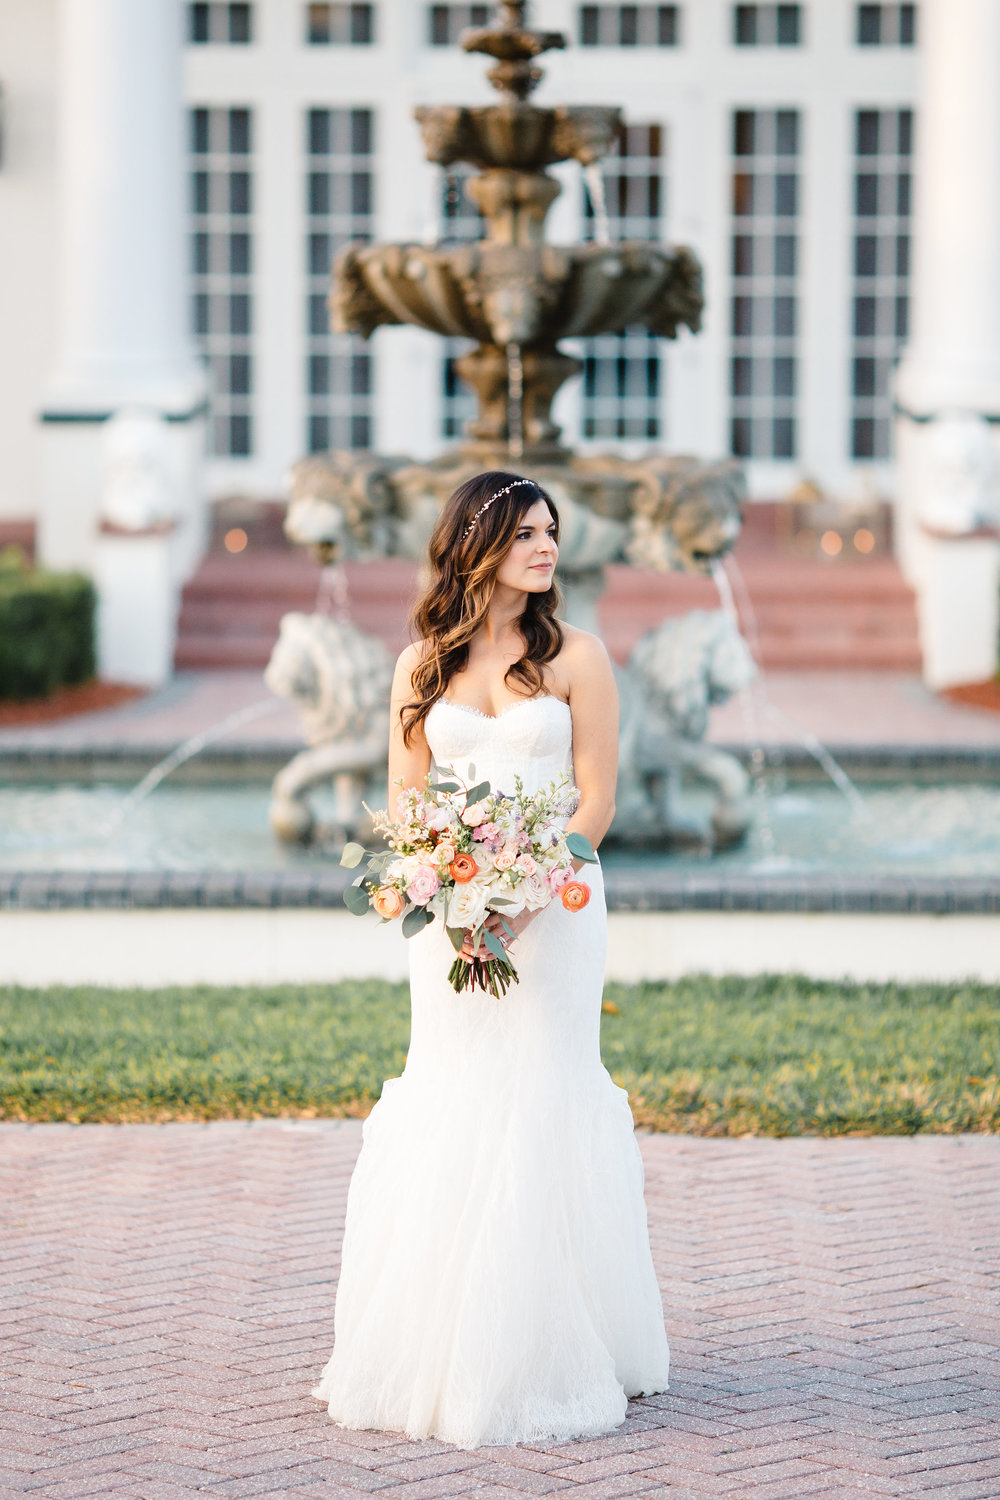 Blush & White Garden wedding at Luxmore Grande Estate in Orlando, Florida  Orlando Wedding Planner Blue Ribbon Weddings  Orlando Bridal Salon The Collection in Winter Park, Florida  Orlando Wedding Photographer JP Pratt Photography  Wedding Ceremony & Reception at Luxmore Grande Estate